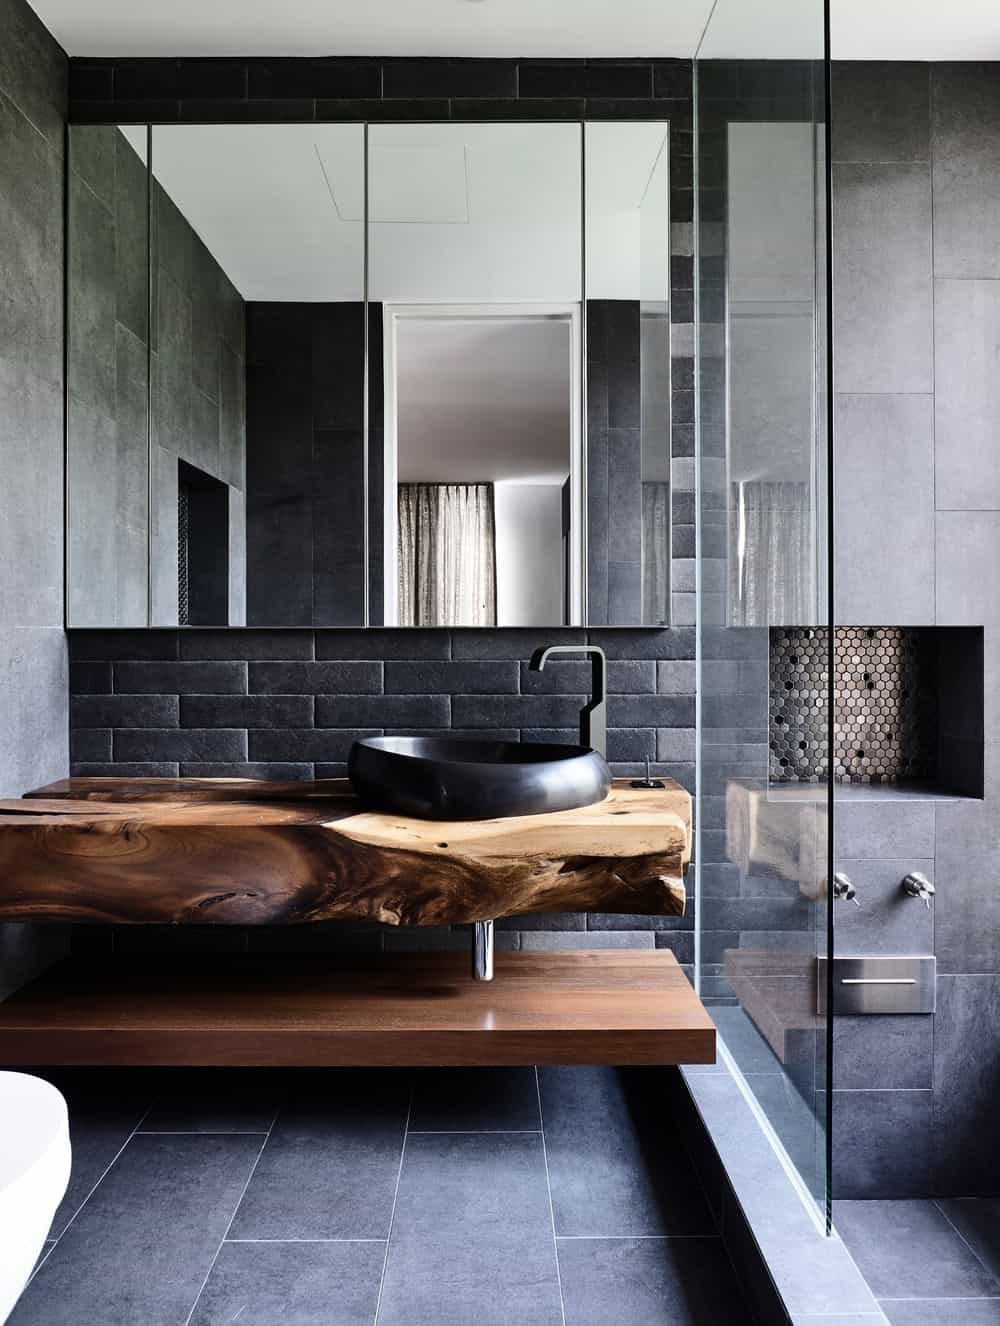 This bathroom has a black freestanding sink on a rustic slab of wood matched with the black brick backsplash.